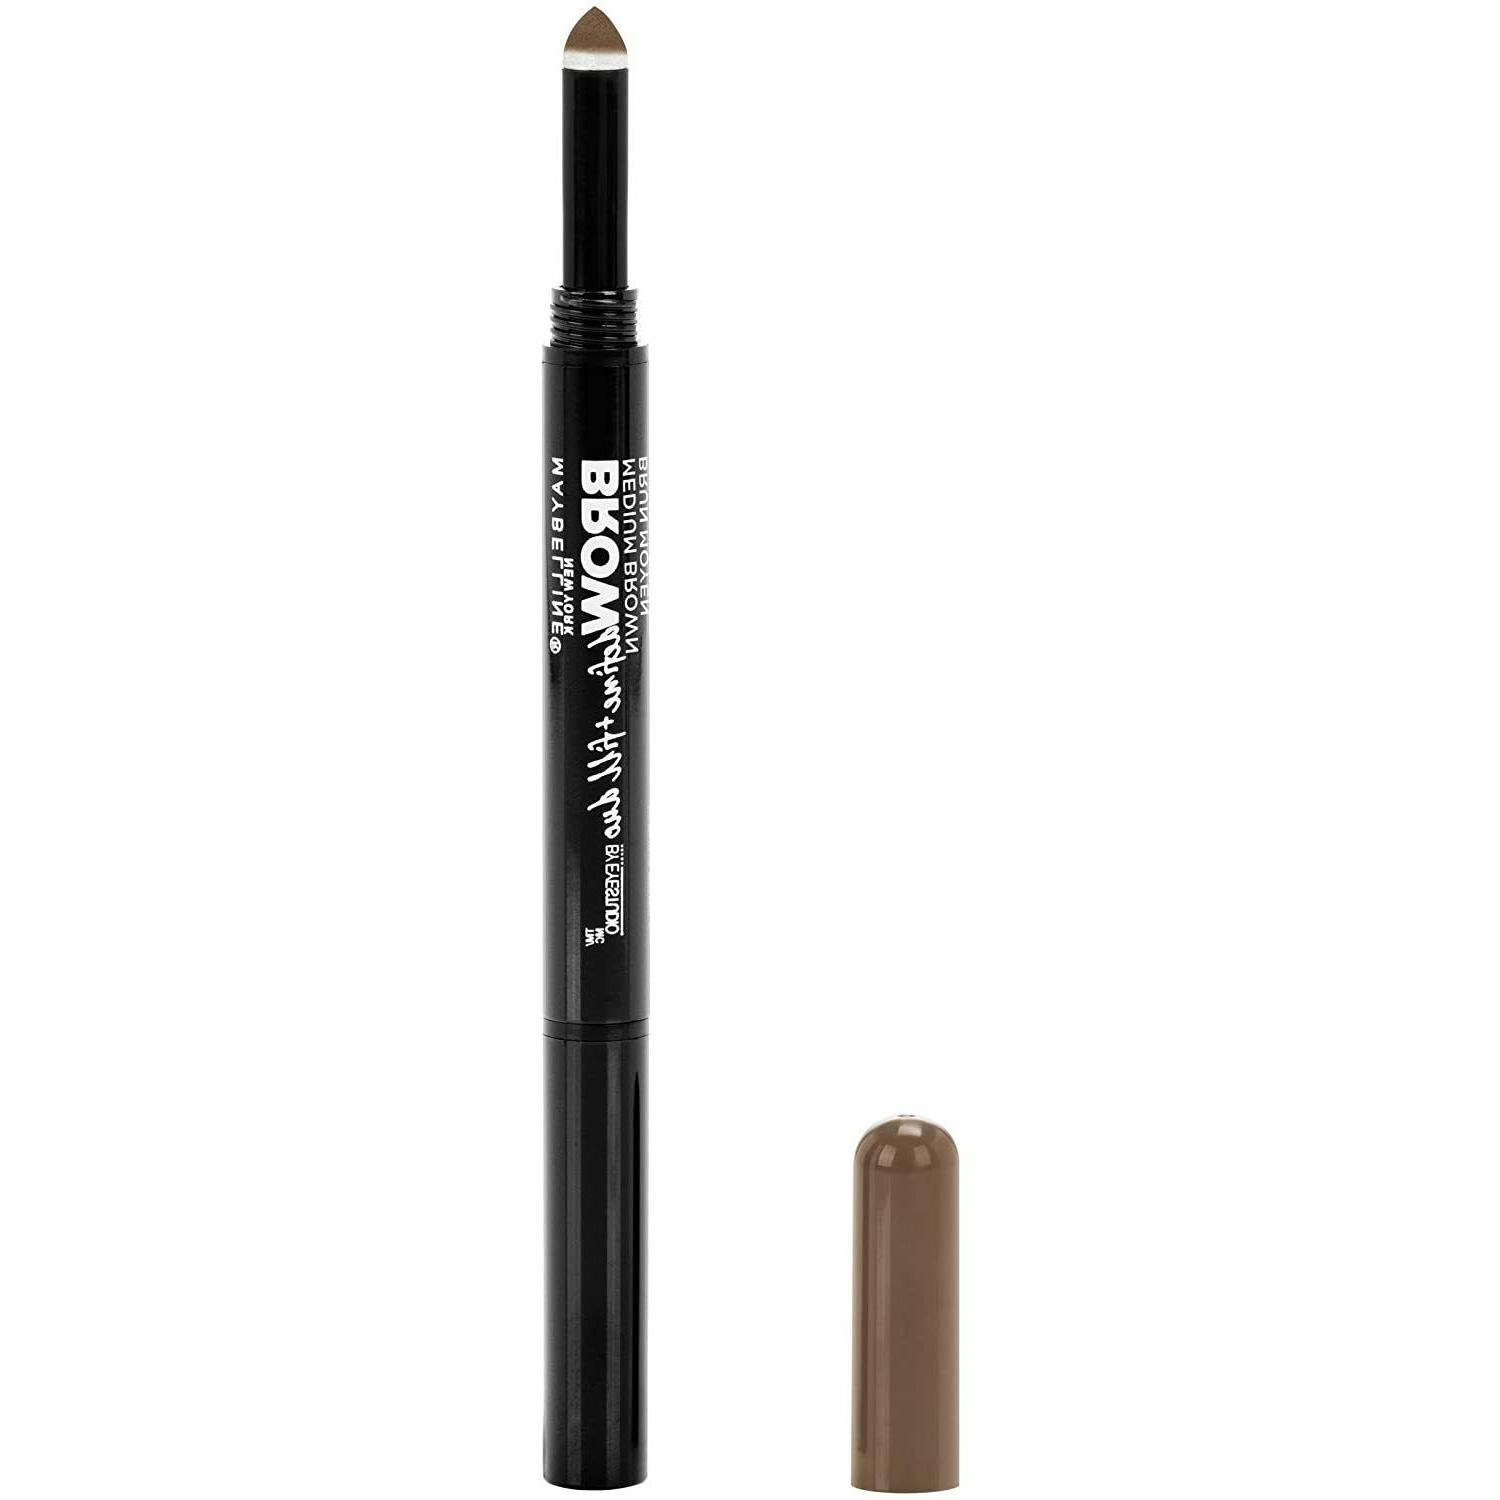 2 of brow define plus fill duo